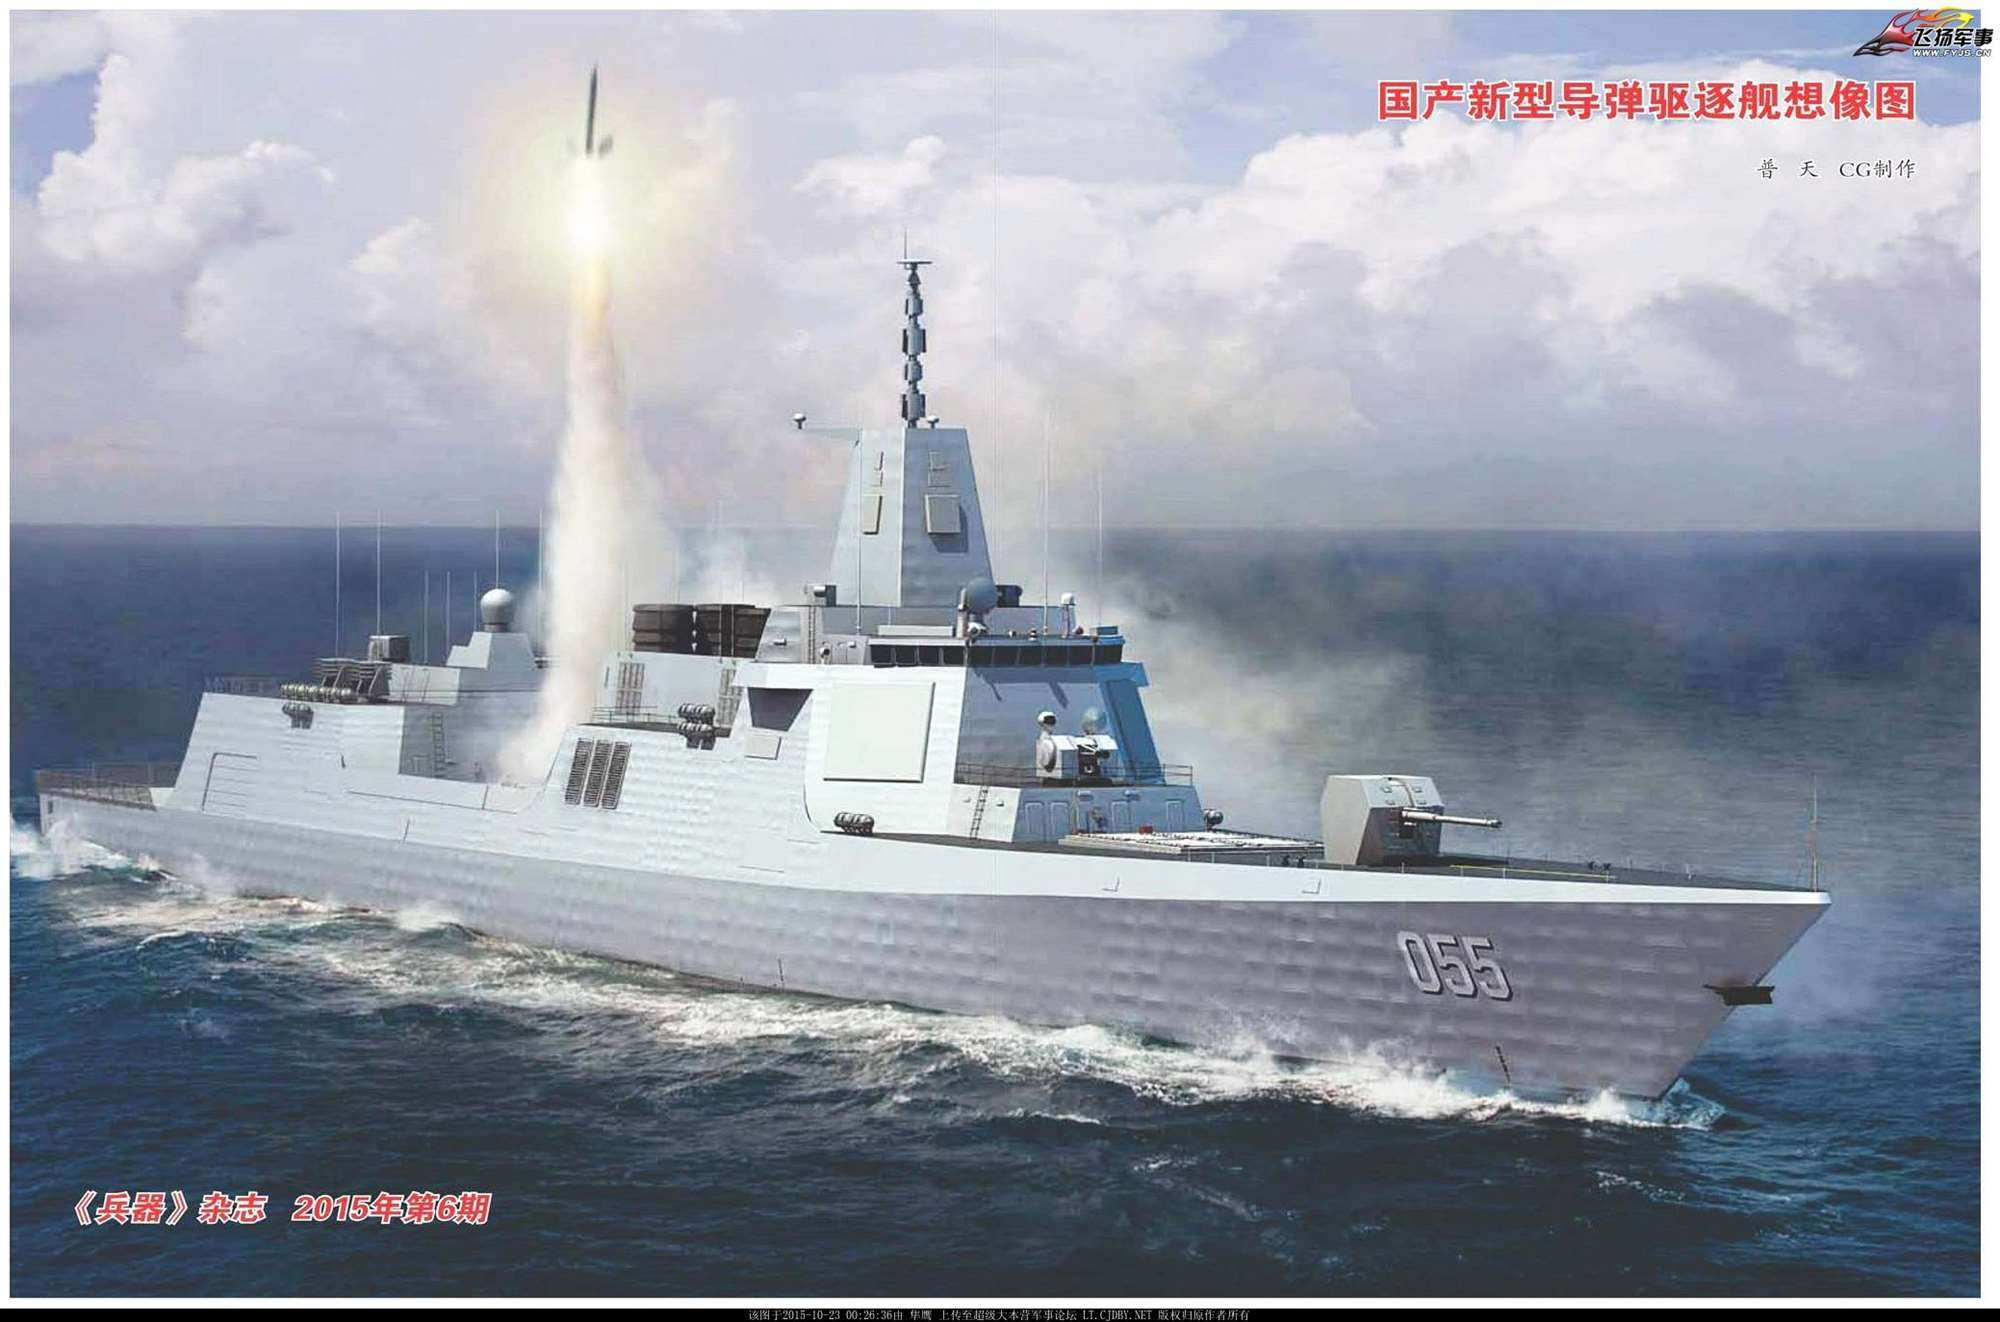 royal navy drones with An Electromag Ic Arms Race Has Begun China Is Making Railguns Too 412162 on 20160628 seagull torpedo furthermore 20130214 uss San Diego Declared Ready For  bat Operations additionally Drones Repasamos Sus Distintos Usos Desde Armas De Guerra Espias De Cine together with 20160622 f 35 adir moreover Defence In The Media 24 May 2015.